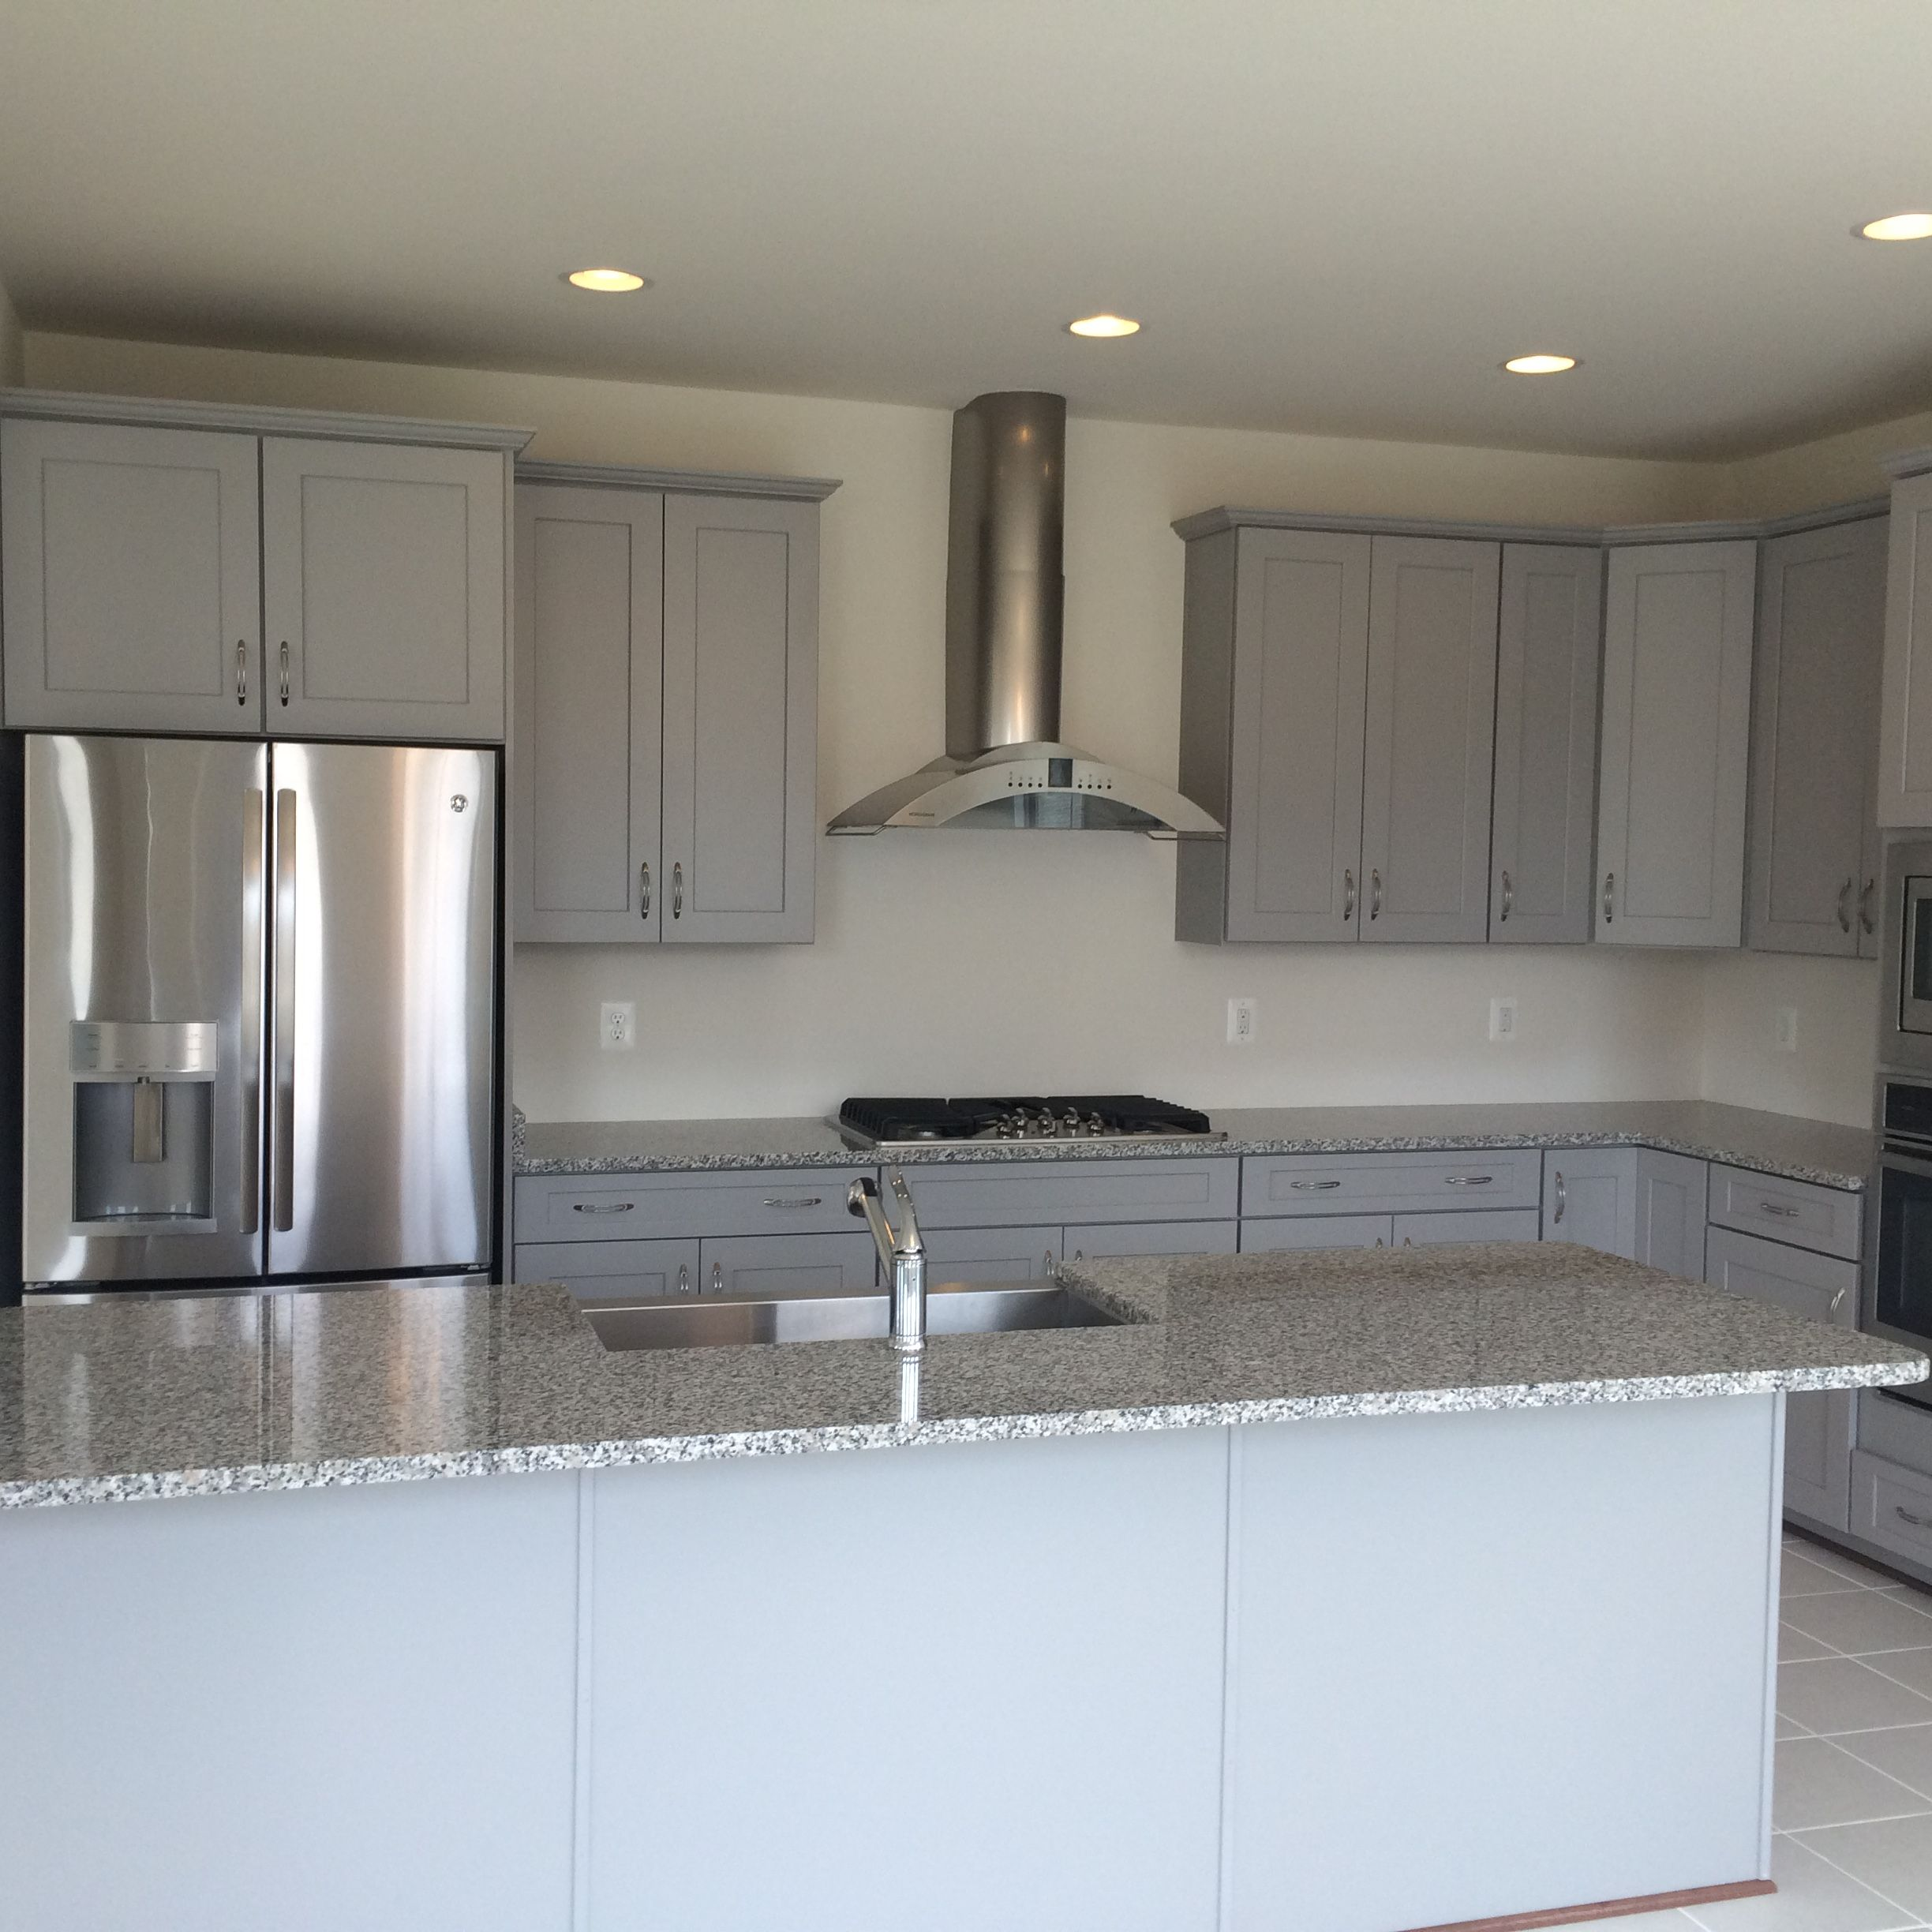 Level 7 Stone Cabinets, Level 1 Luna Pearl Granite Counter ...